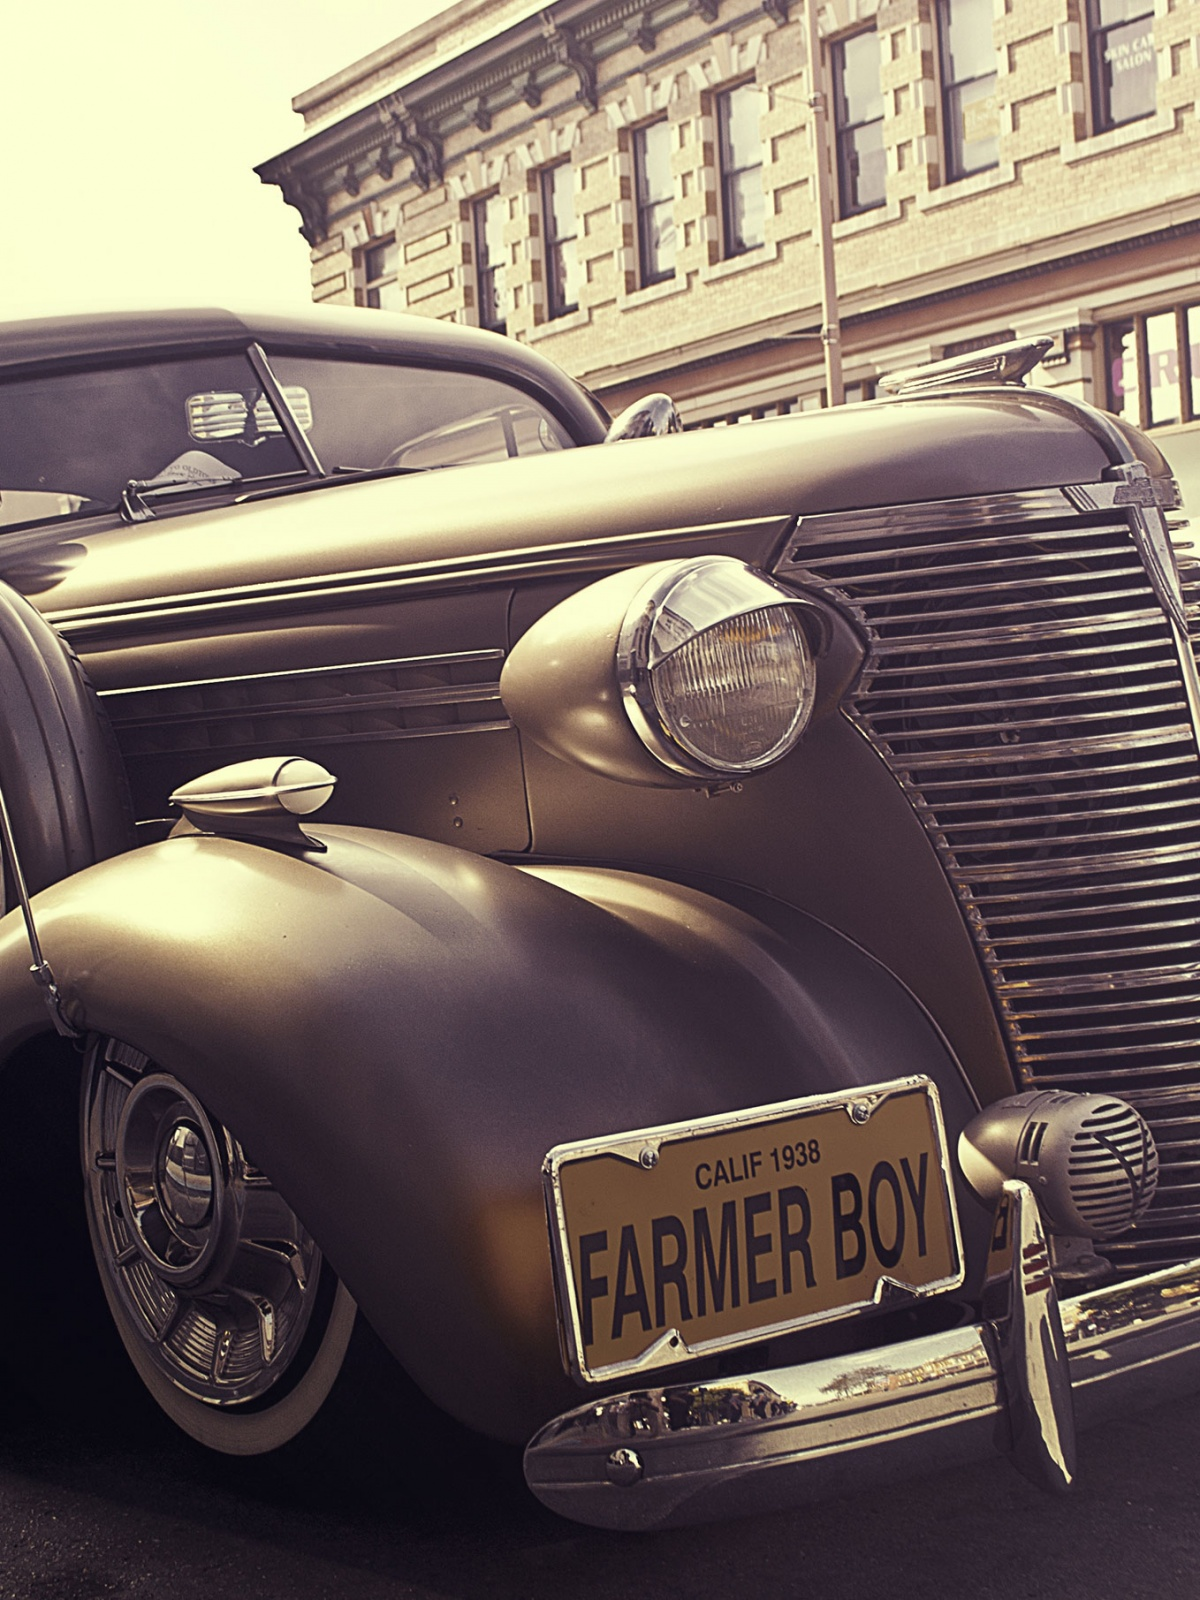 Car Vehicle Vintage Luxury Mobile Wallpaper Mobiles Wall